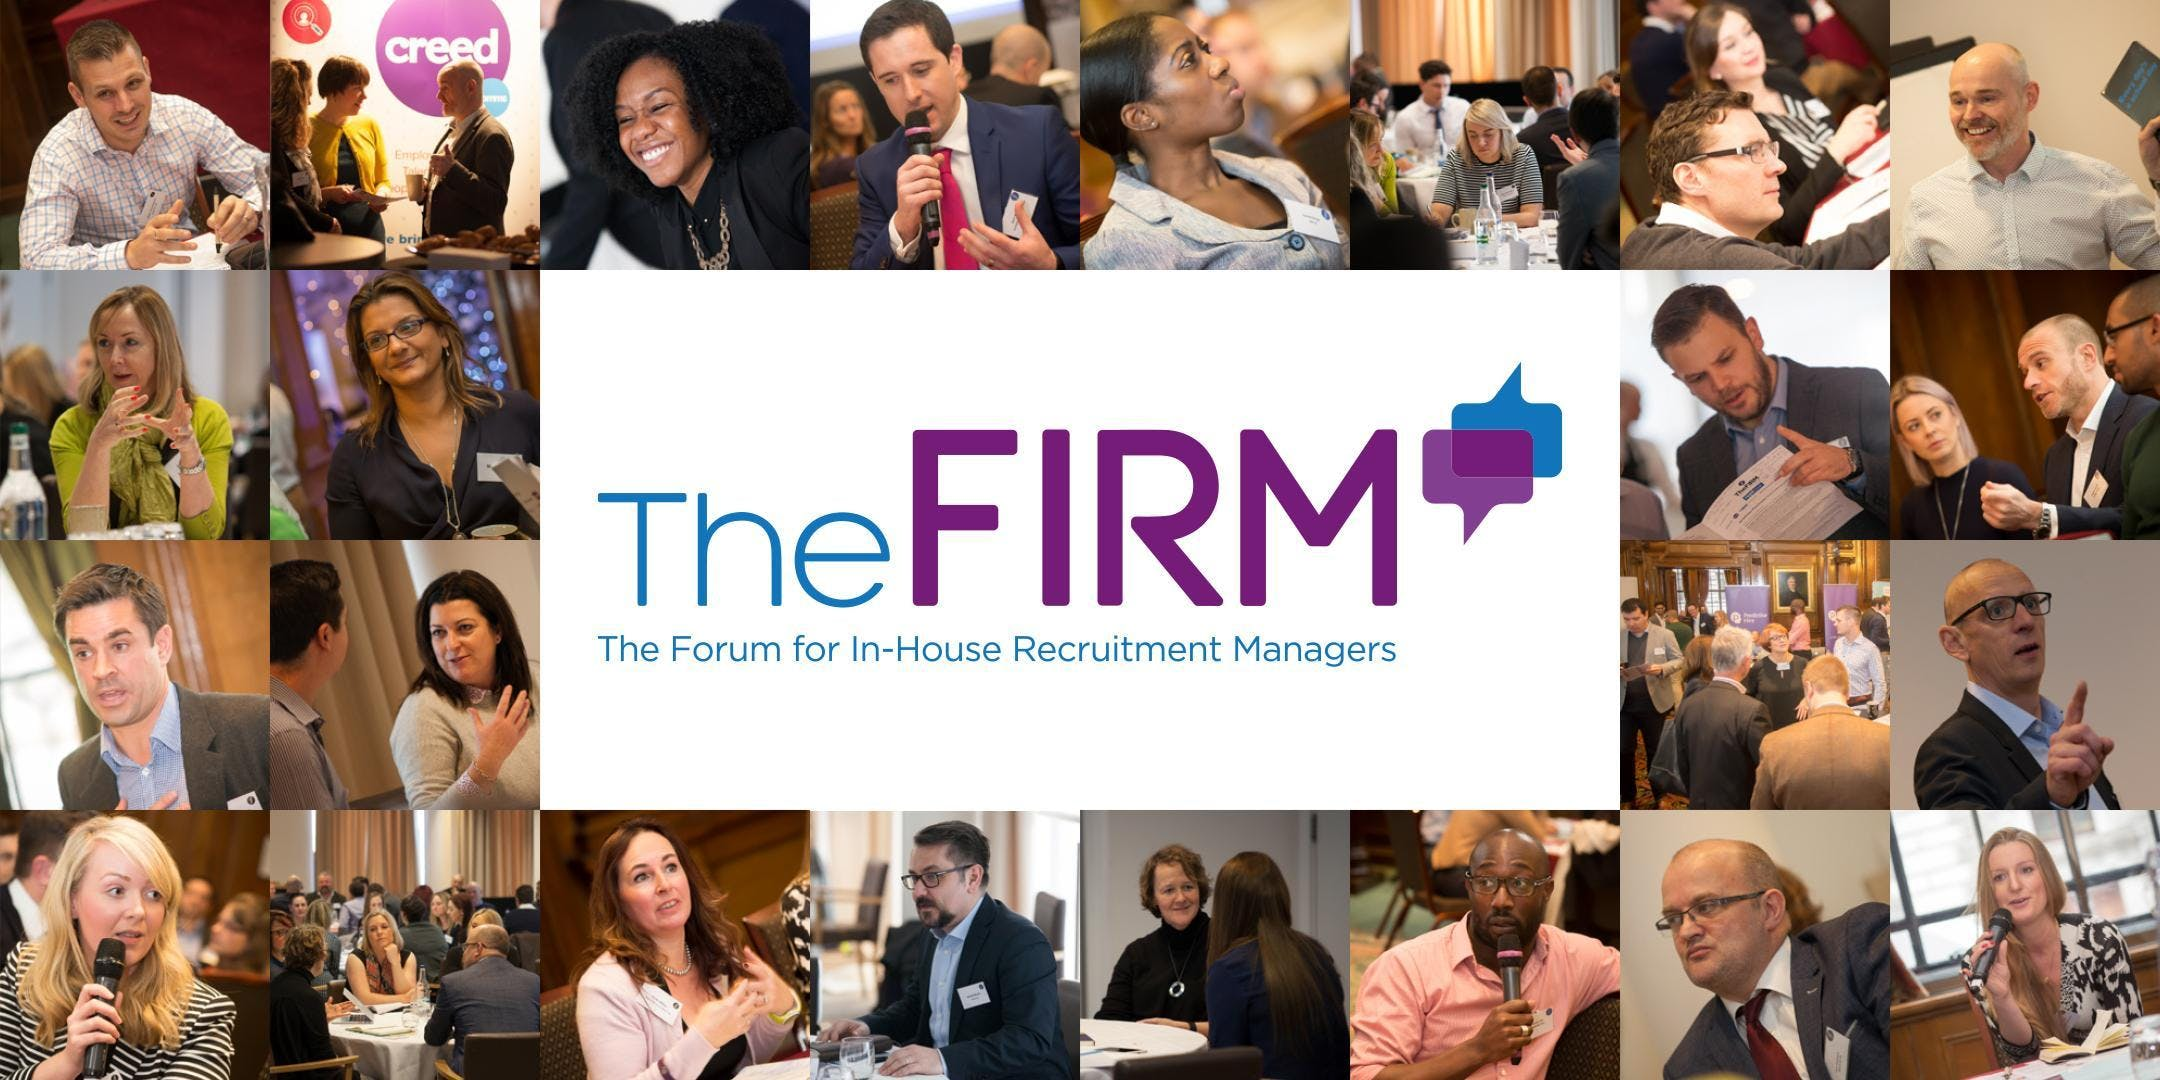 The Forum for In-House Recruitment Managers (